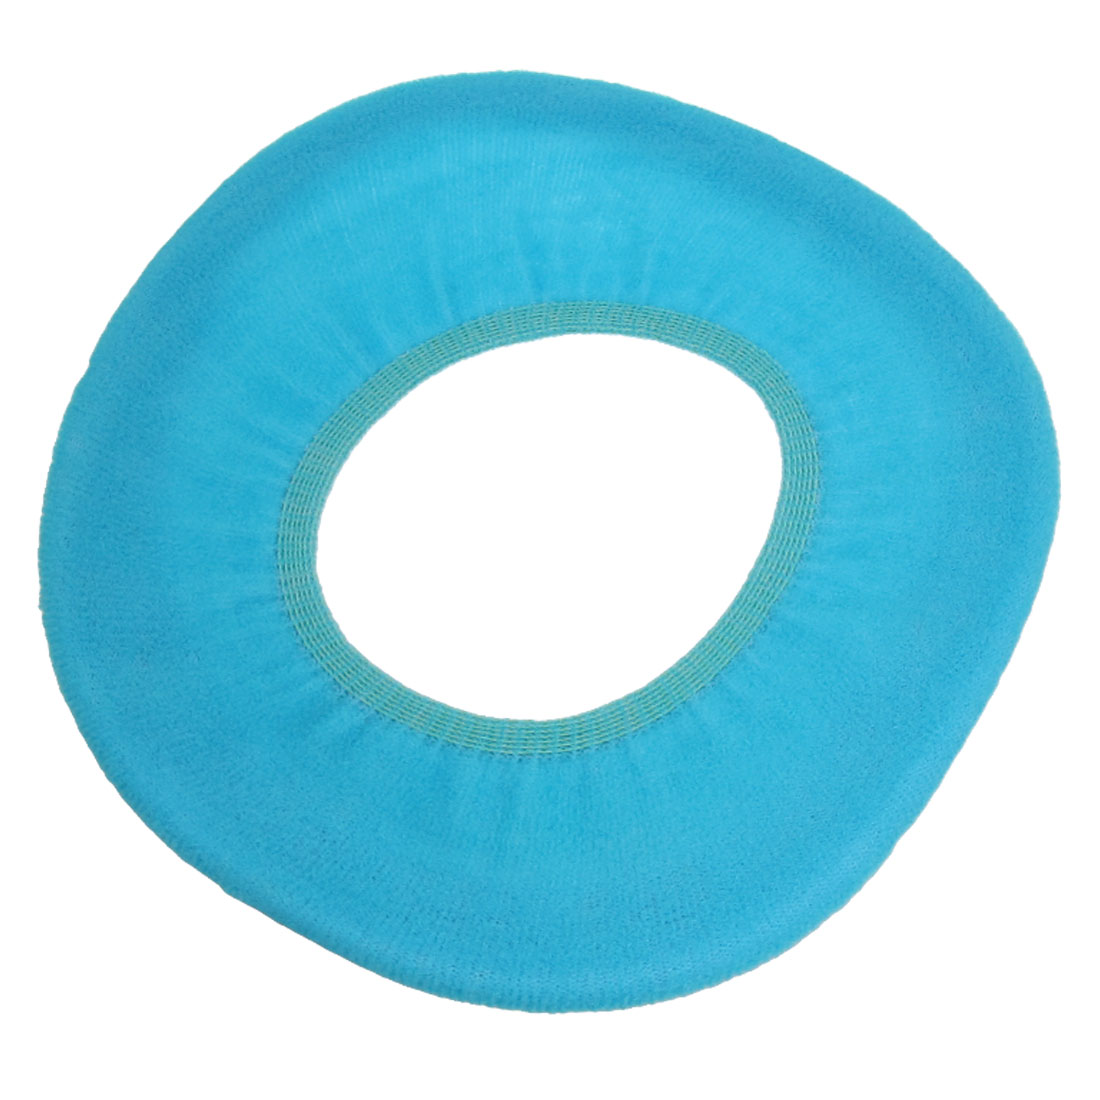 "11.8"" Outer Dia. Bathroom Toilet Warmer Seat Blue Cloth Cover Pads"